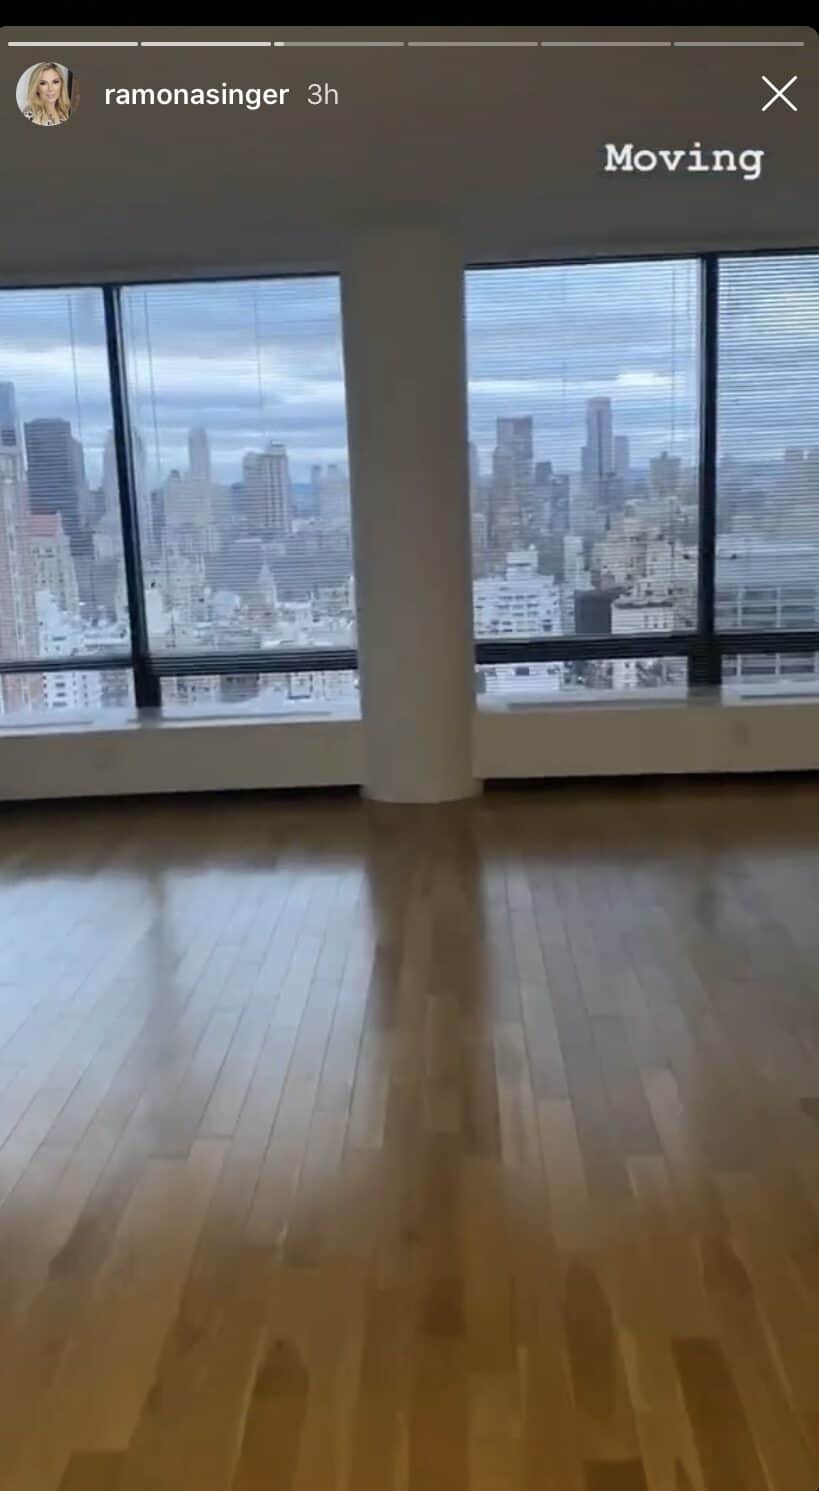 RHONY Ramona Singer Announces She's Moving to New NYC Apartment